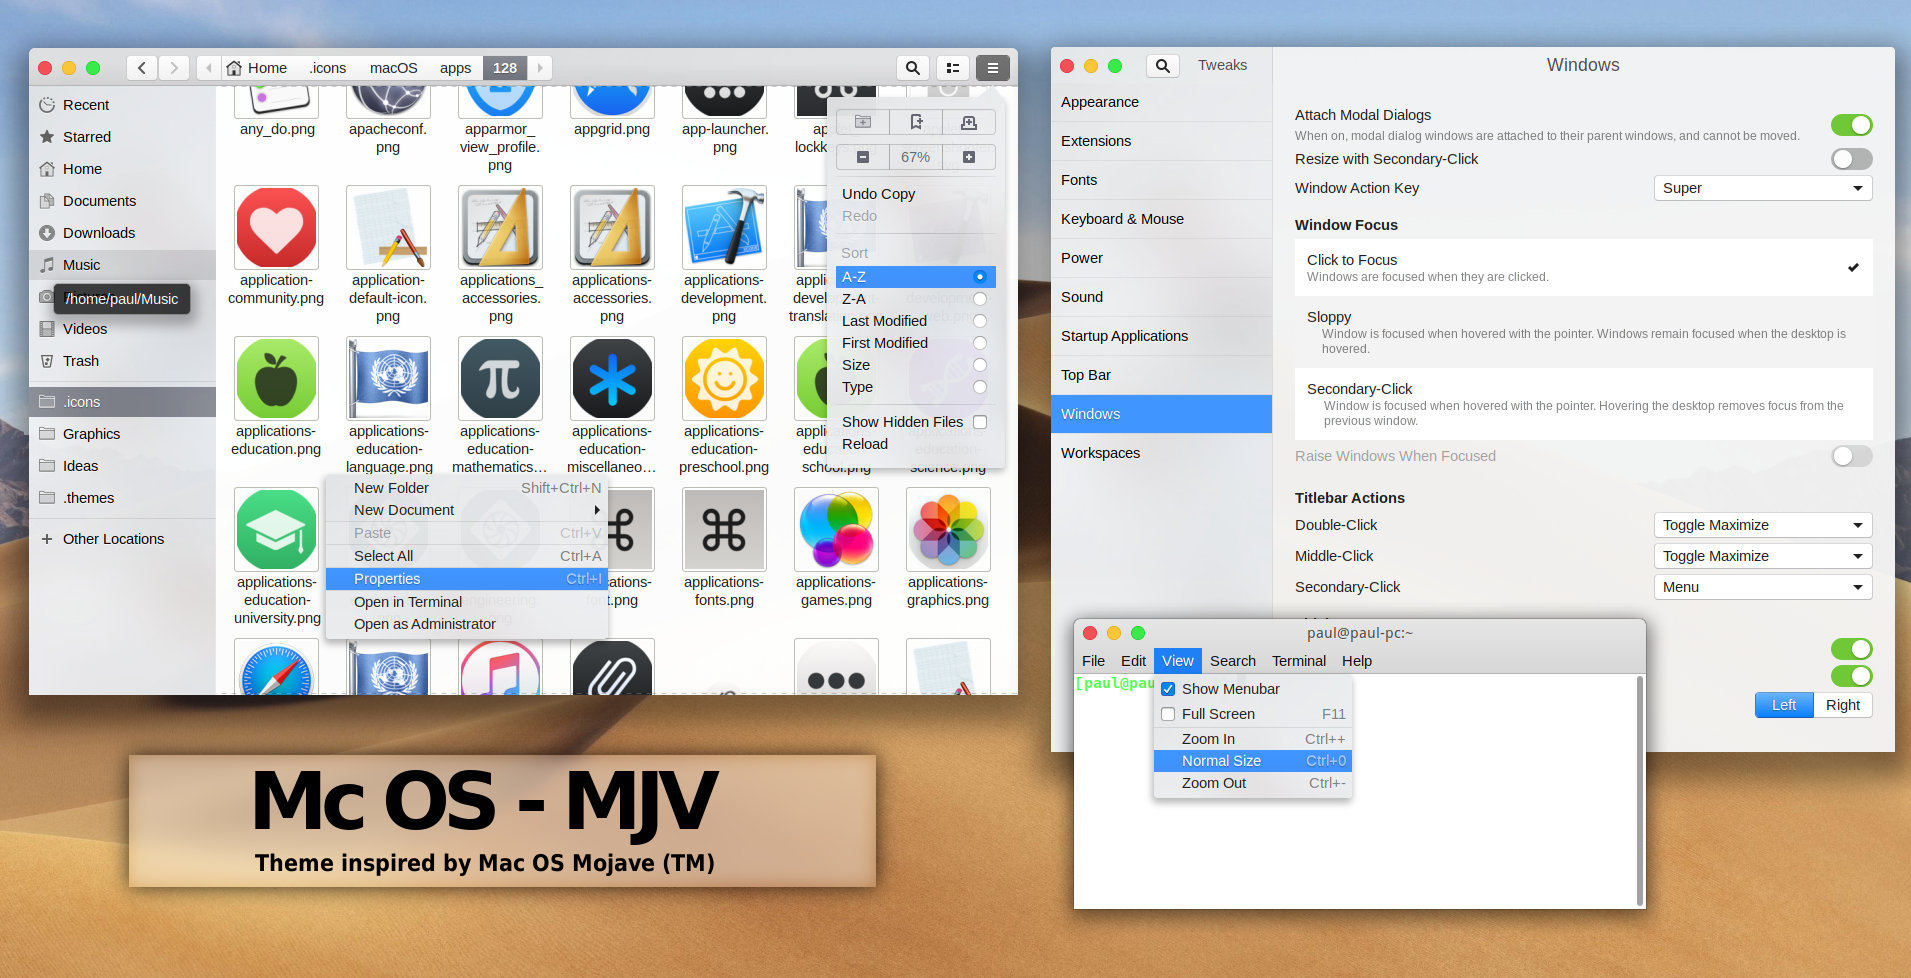 Download macOS Mojave Theme For Ubuntu - Includes Dark Mode!